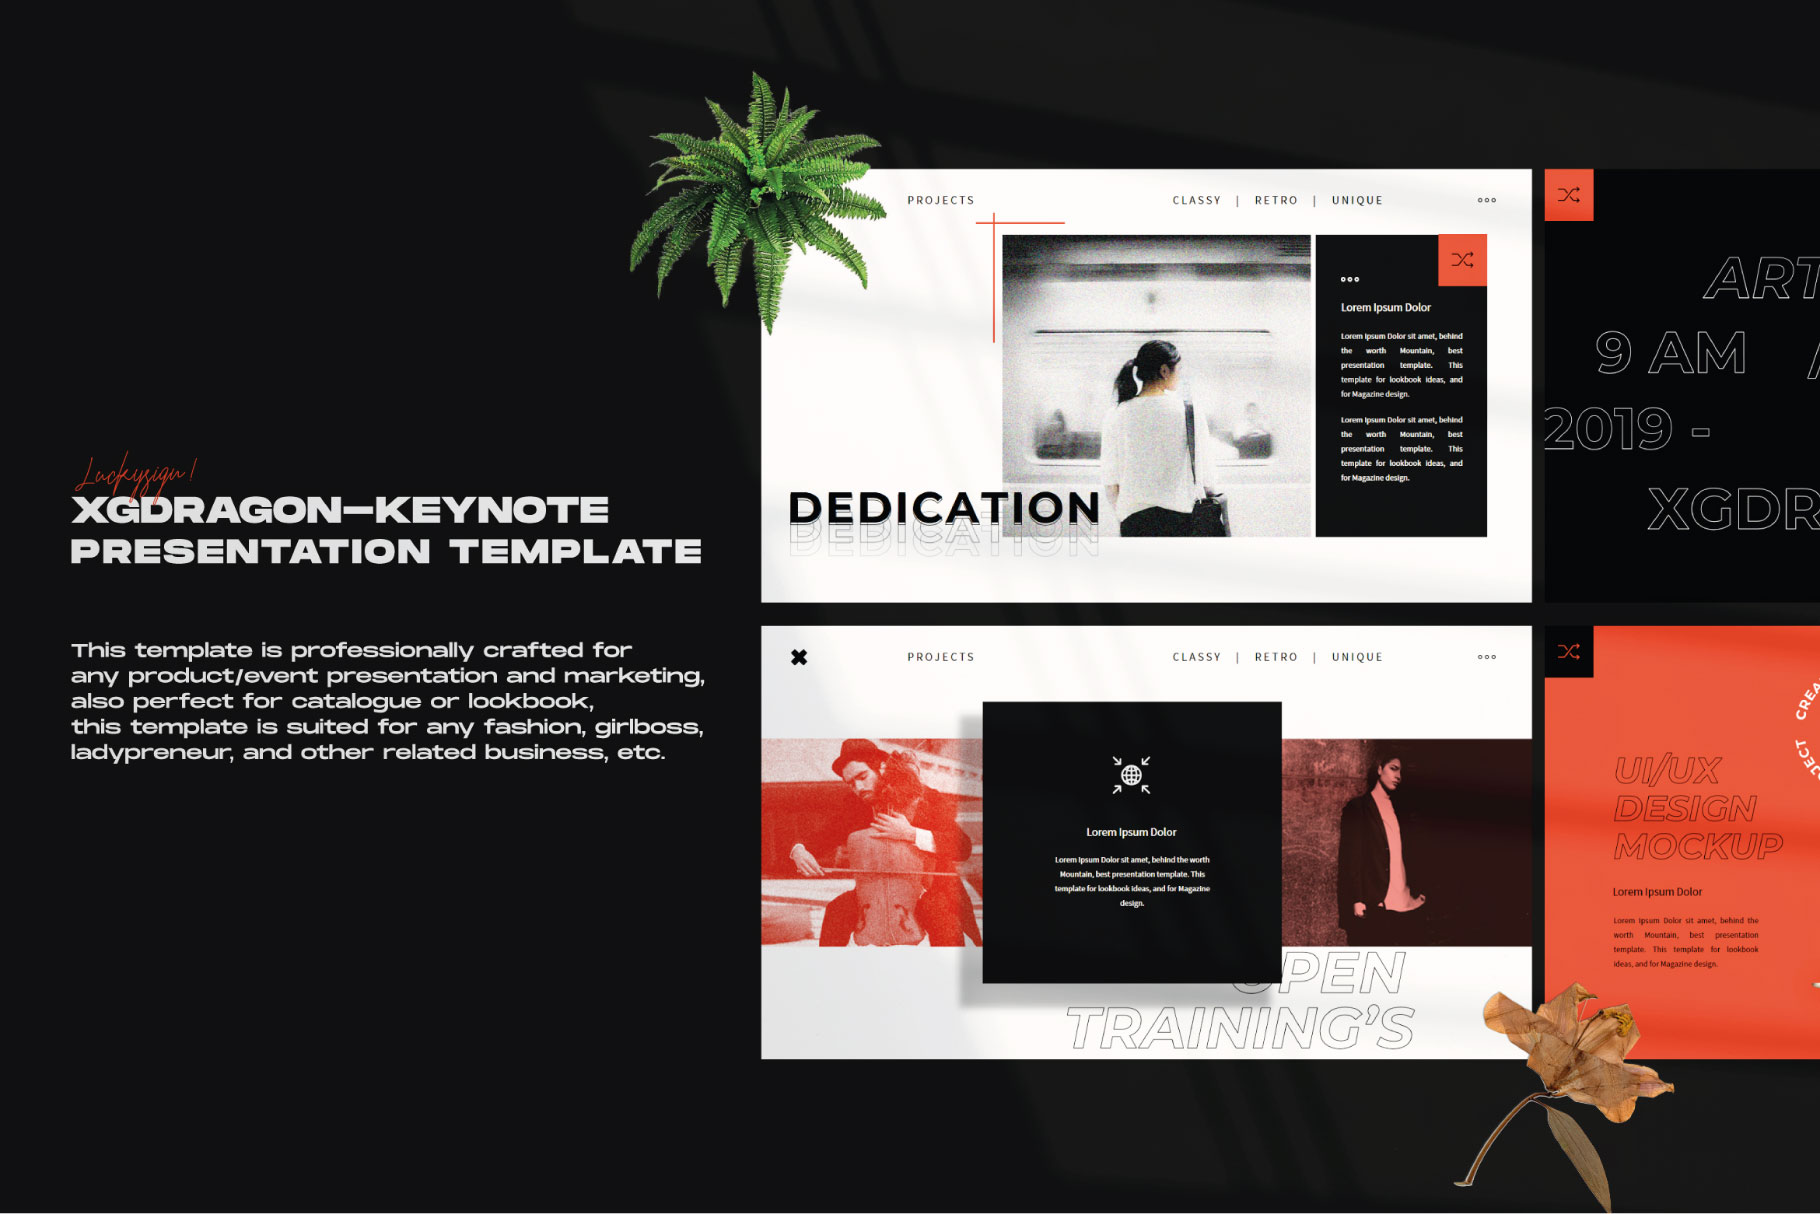 XGdragon Business Presentation Template example image 8